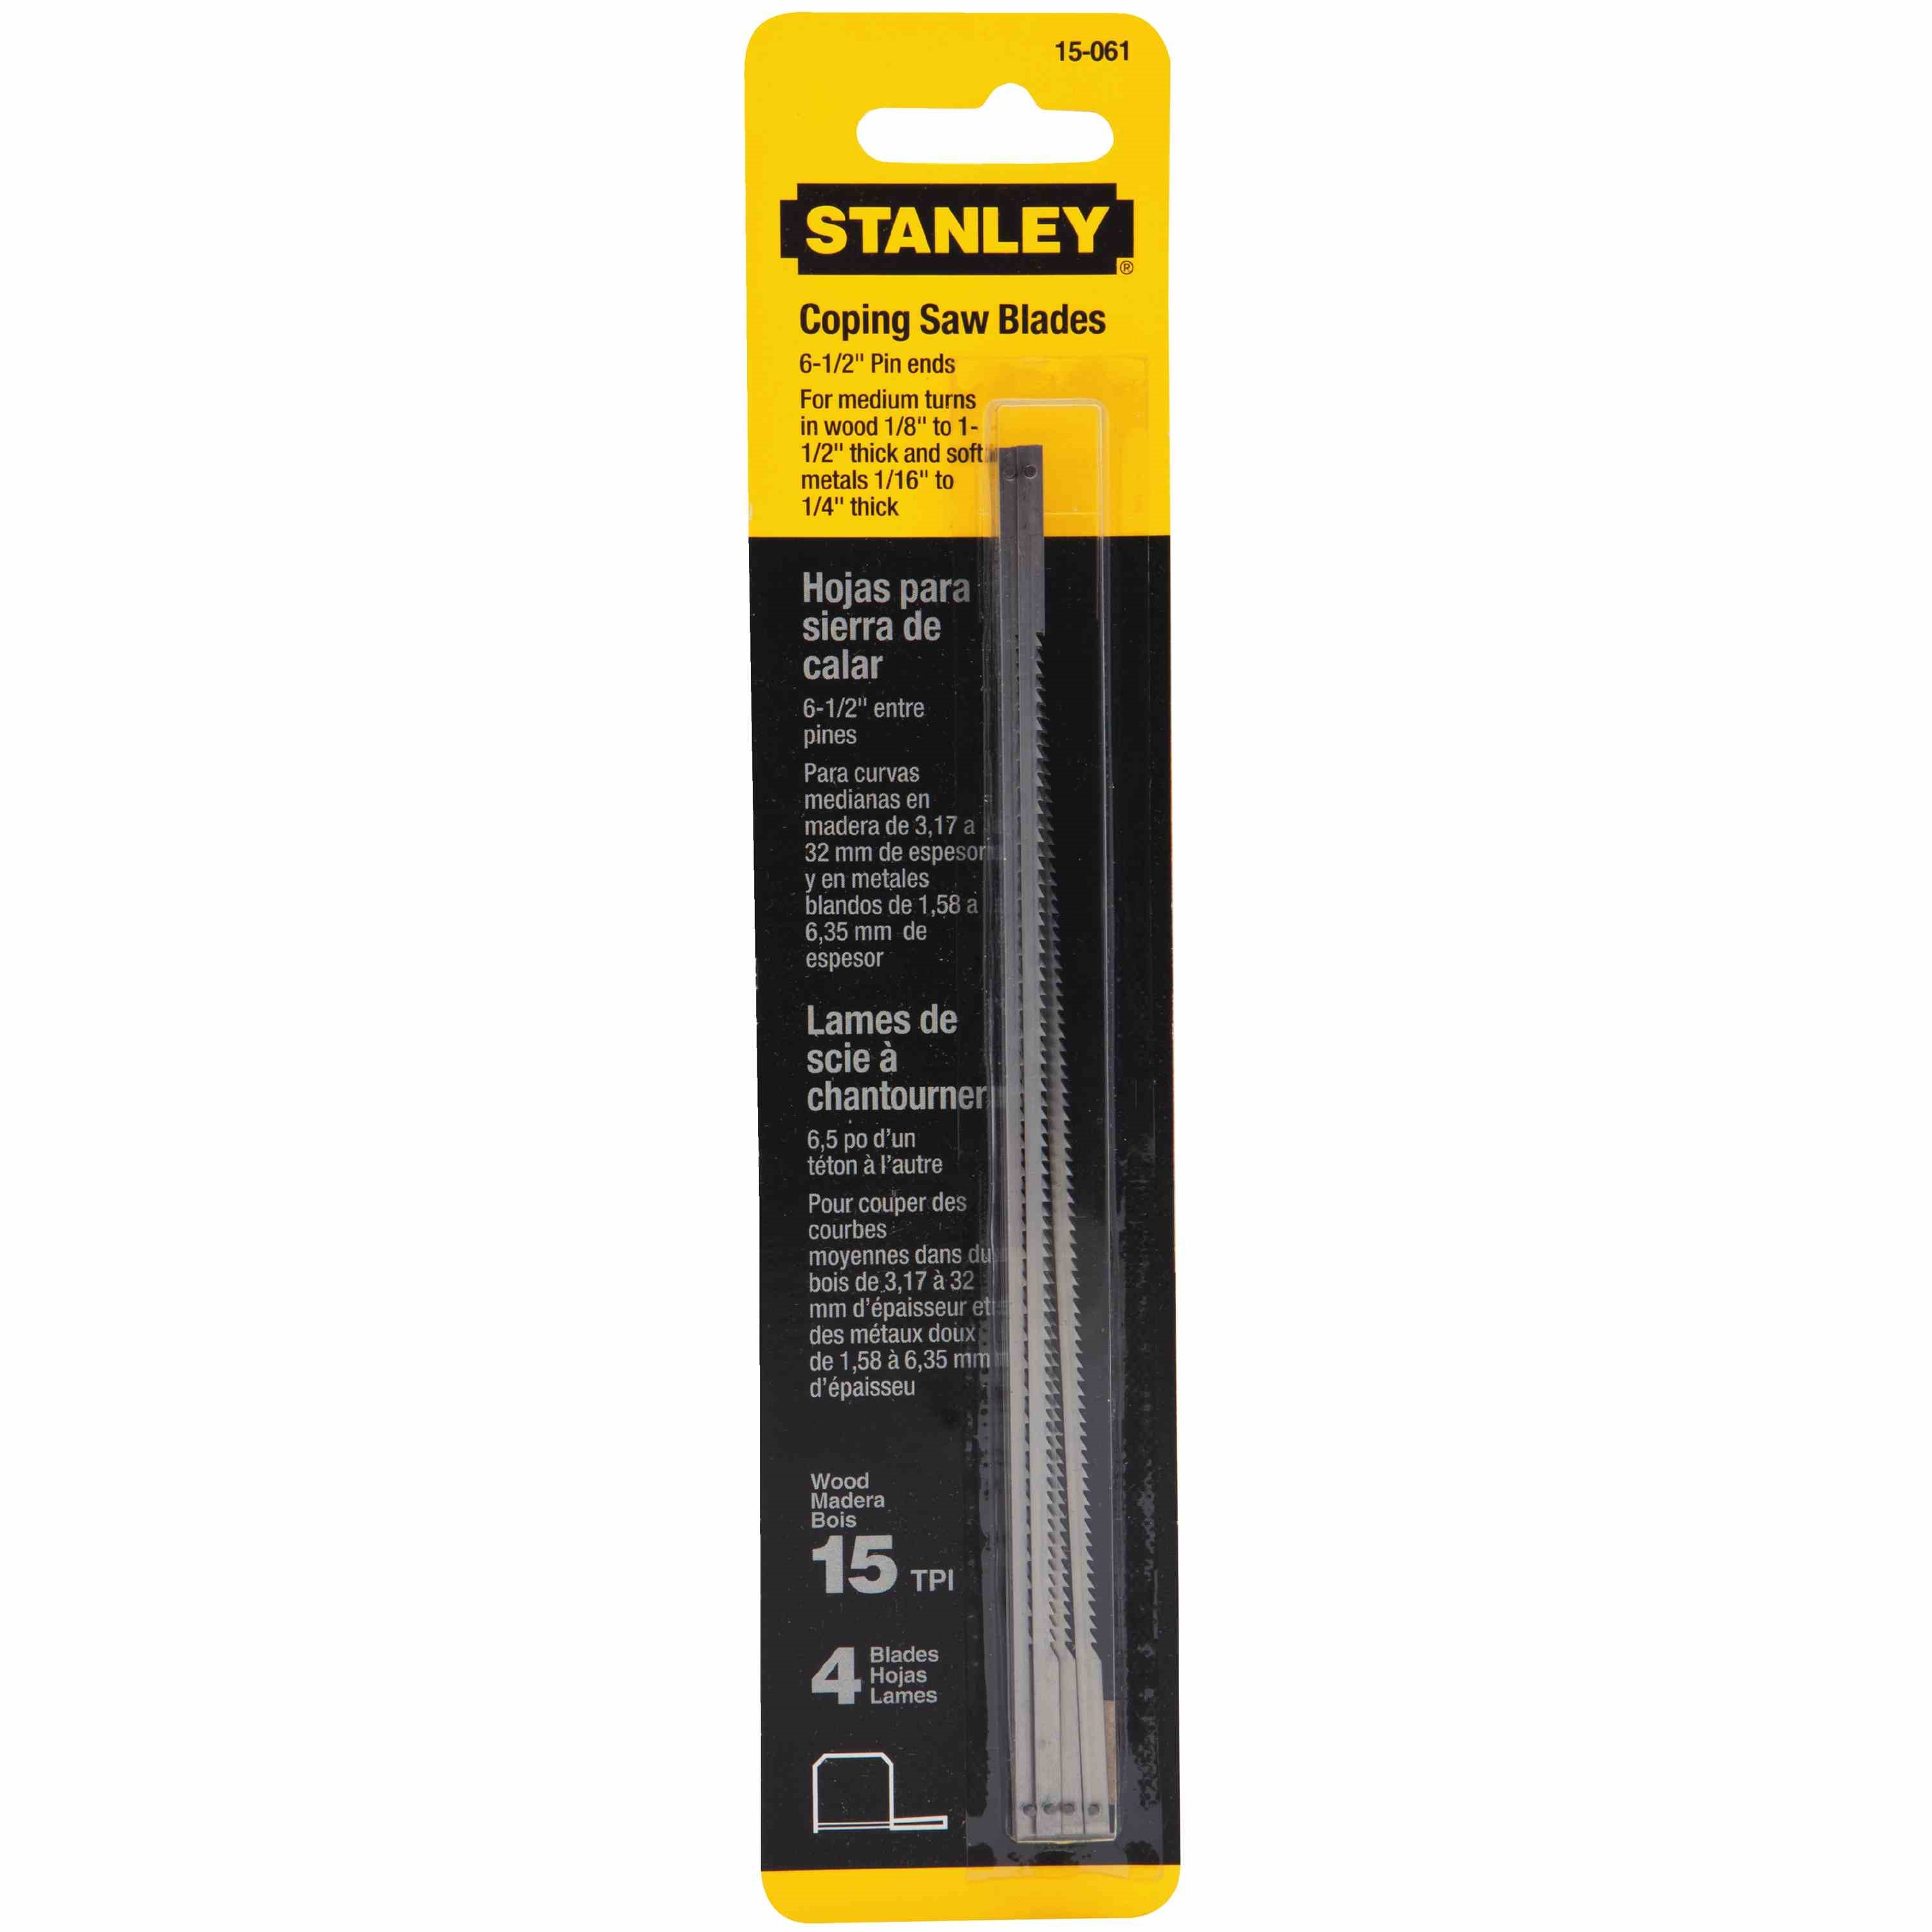 Stanley Tools - 4 pk 612 in x 15 TPI Coping Saw Blades - 15-061